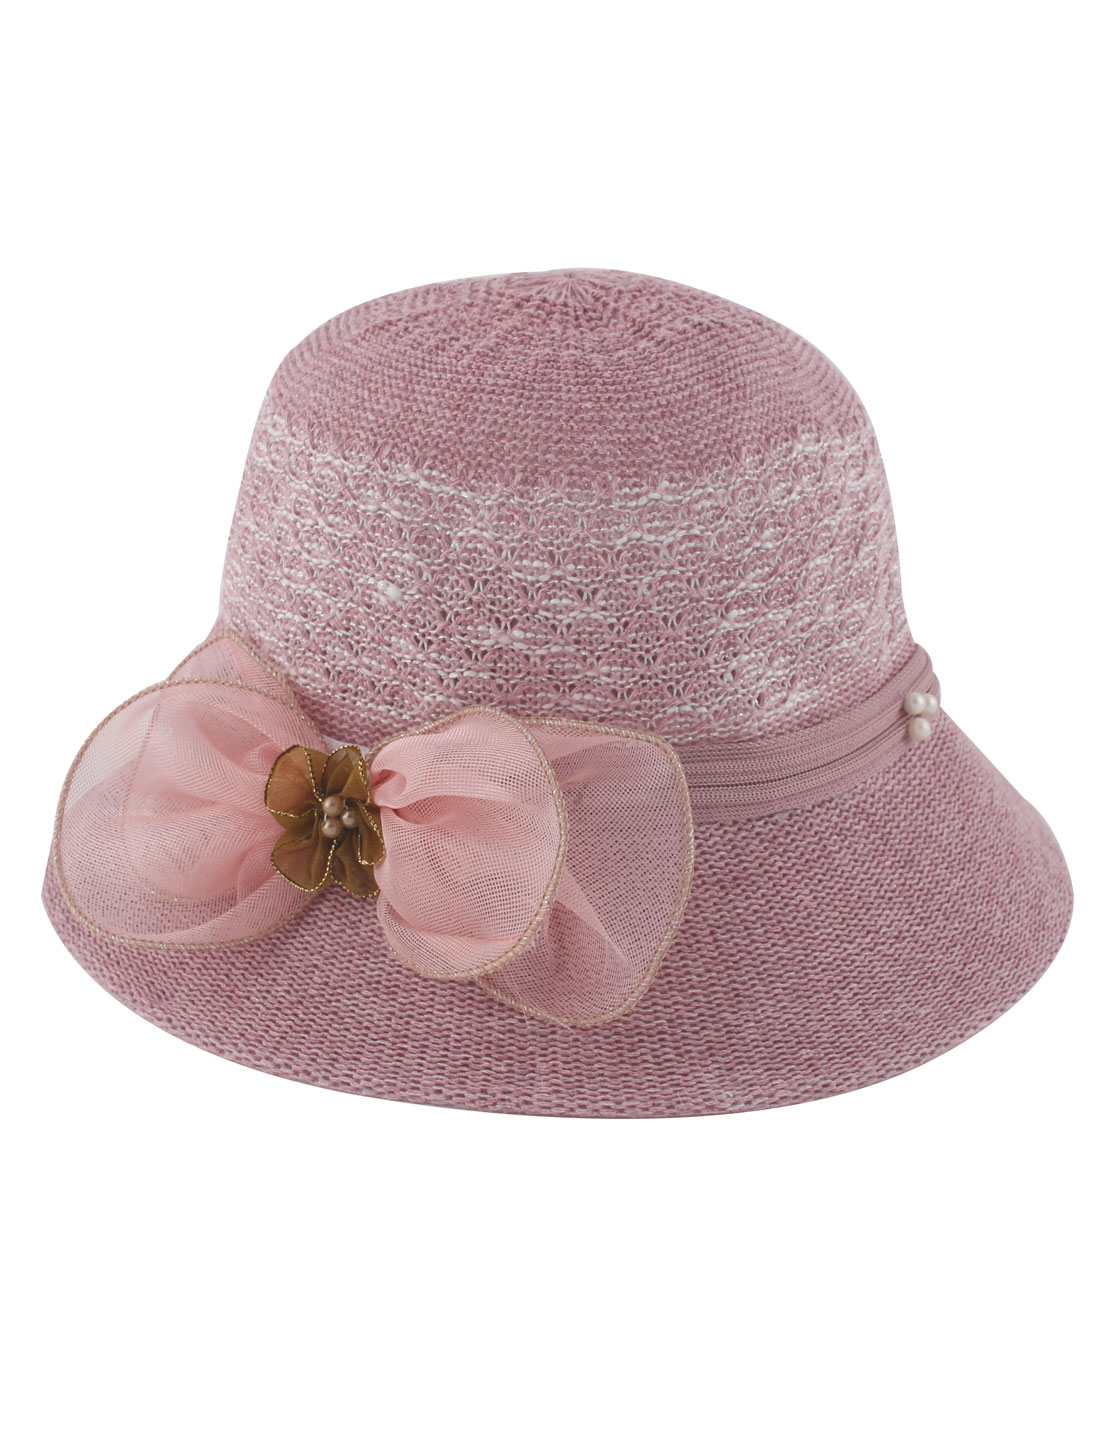 Women Polyester Woven Bowknot Embellished Summer Outdoor Sun Hat Dark Pink